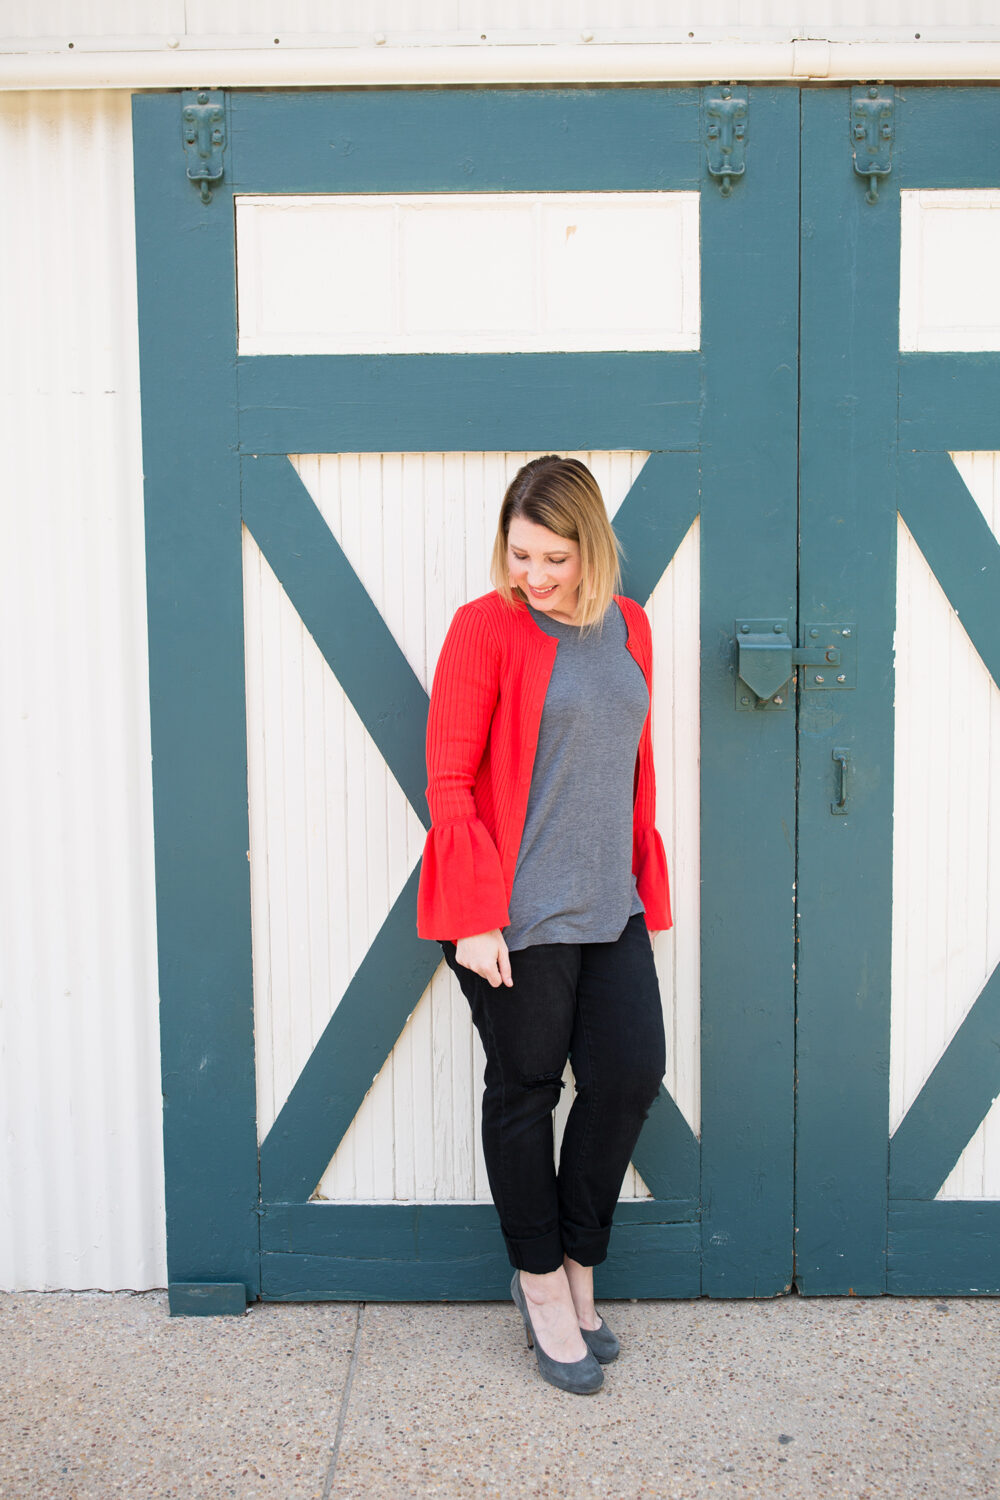 Need to dress for your pear shape body? Los Angeles Lifestyle blogger, Lipgloss & Crayons shares the perfect red cardigan!